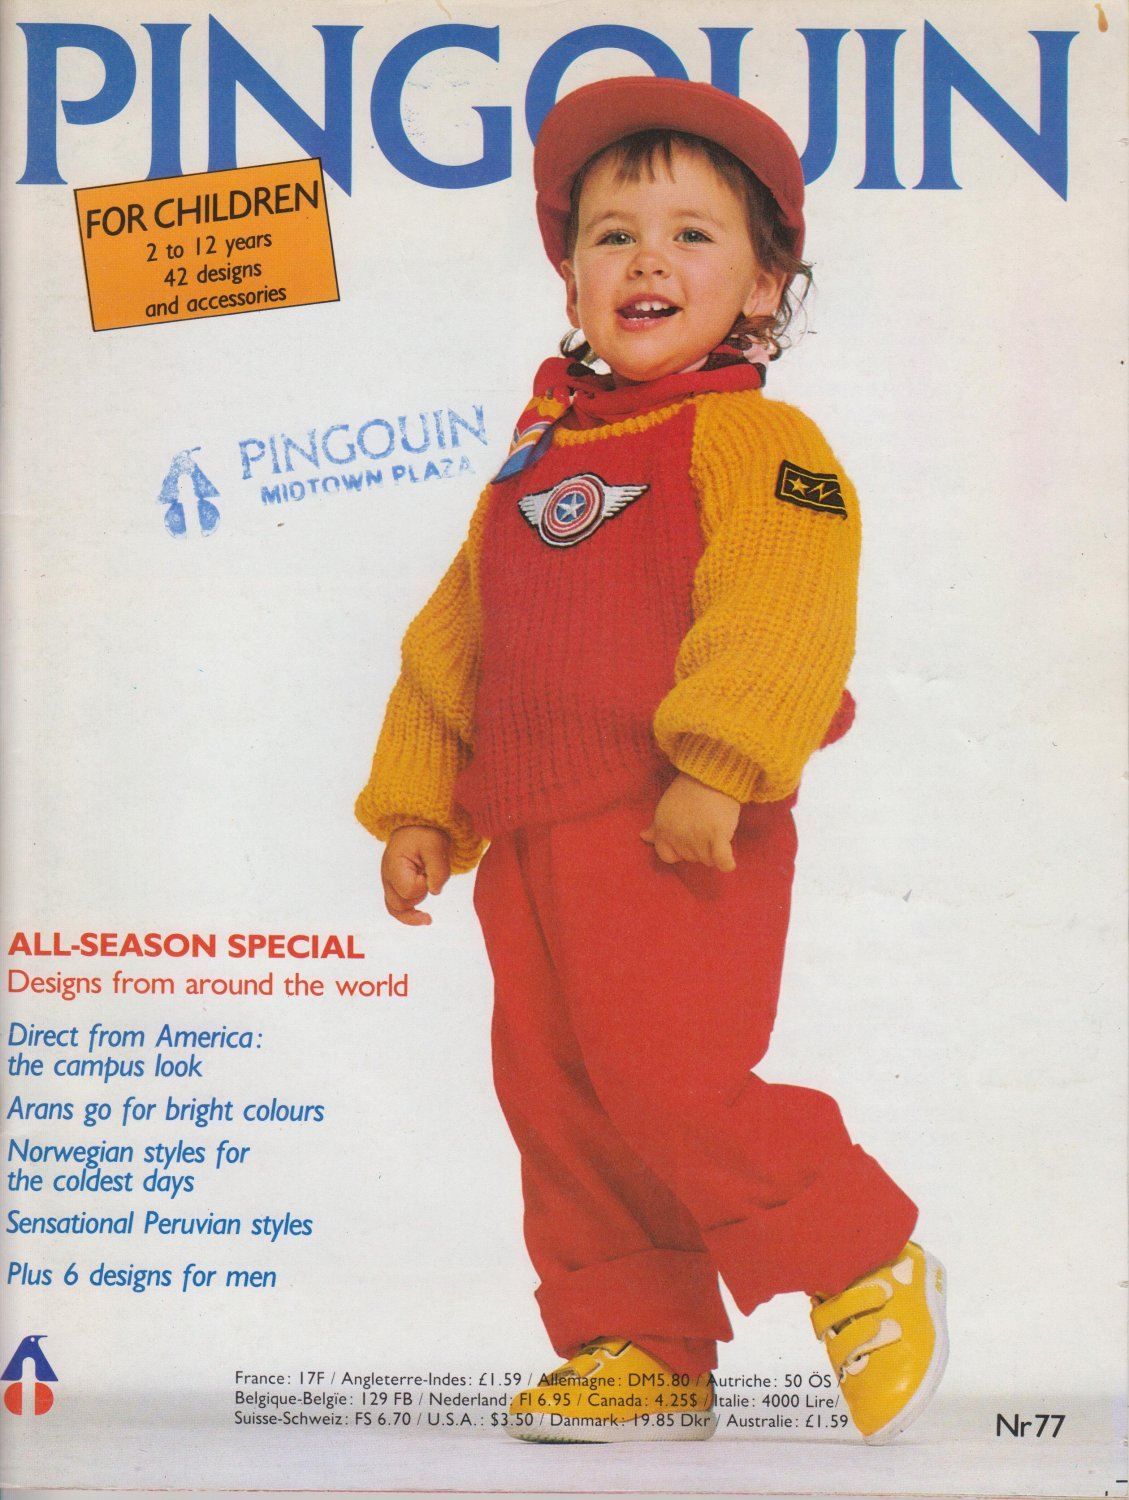 Pingouin Knitting Magazine Nr 77 with 42 designs and accessories for children 2-12 yrs